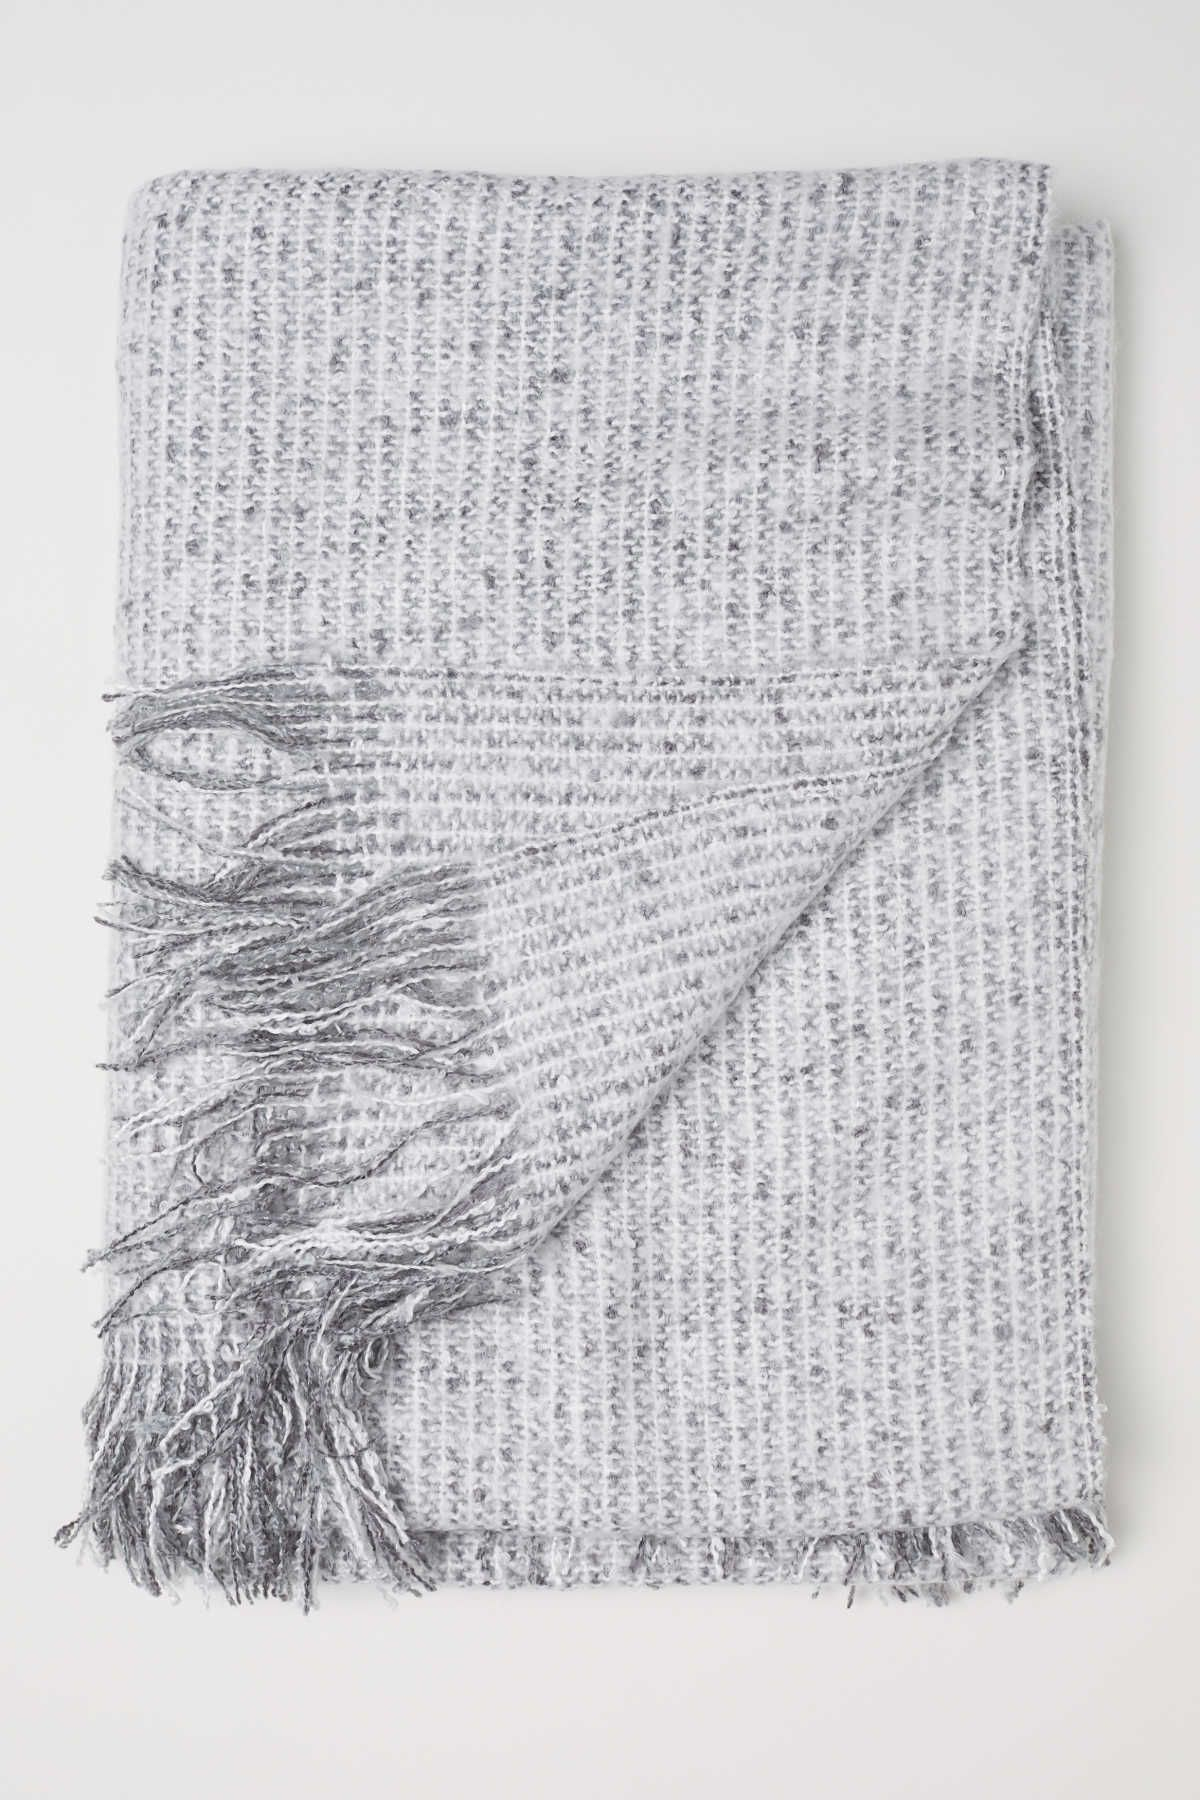 Gray Throw In Soft, Woven Fabric With Fringe At Short